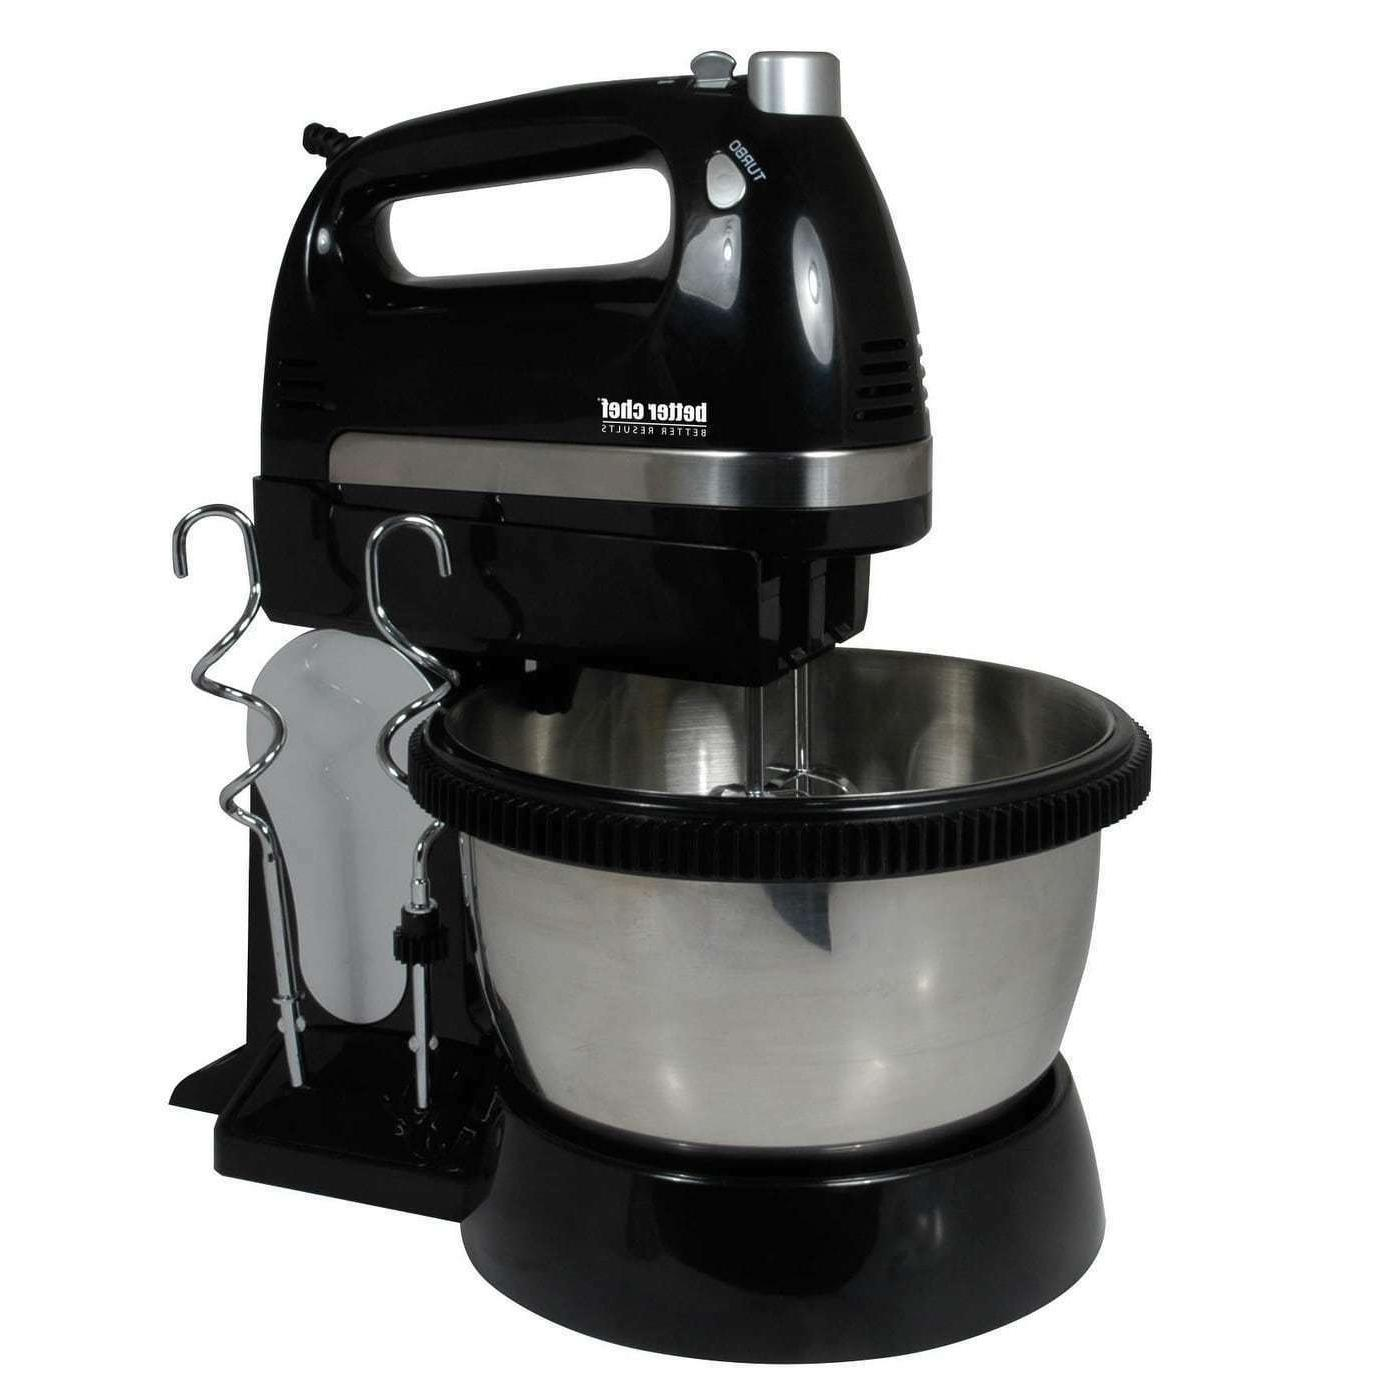 Better Chef 2-in-1 Stand and Hand Mixer - 5-Speeds with Turb